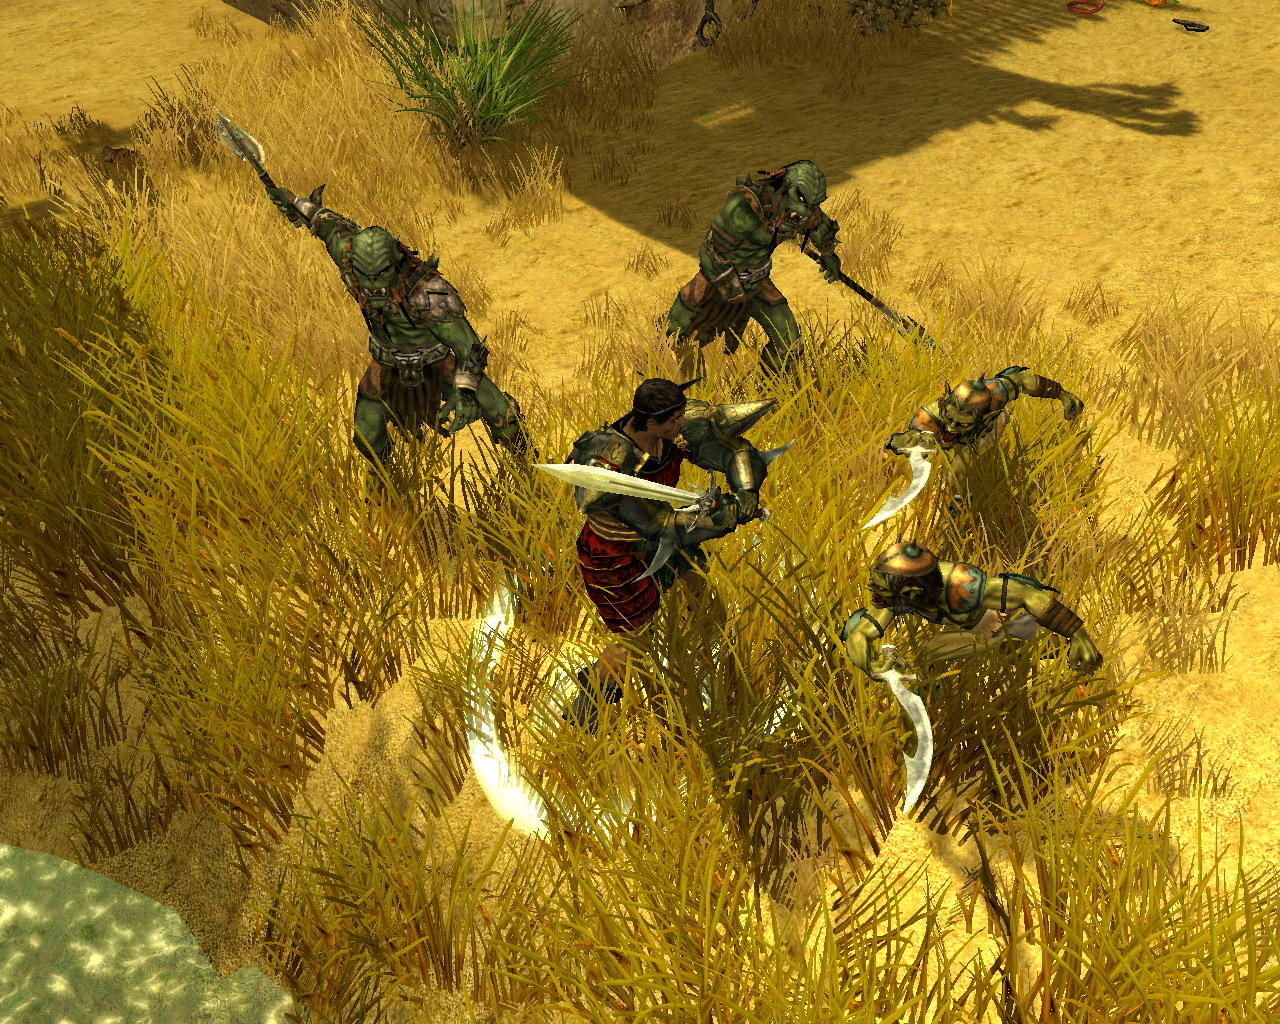 List of cooperative video games, wikipedia Download music, movies, games, software!